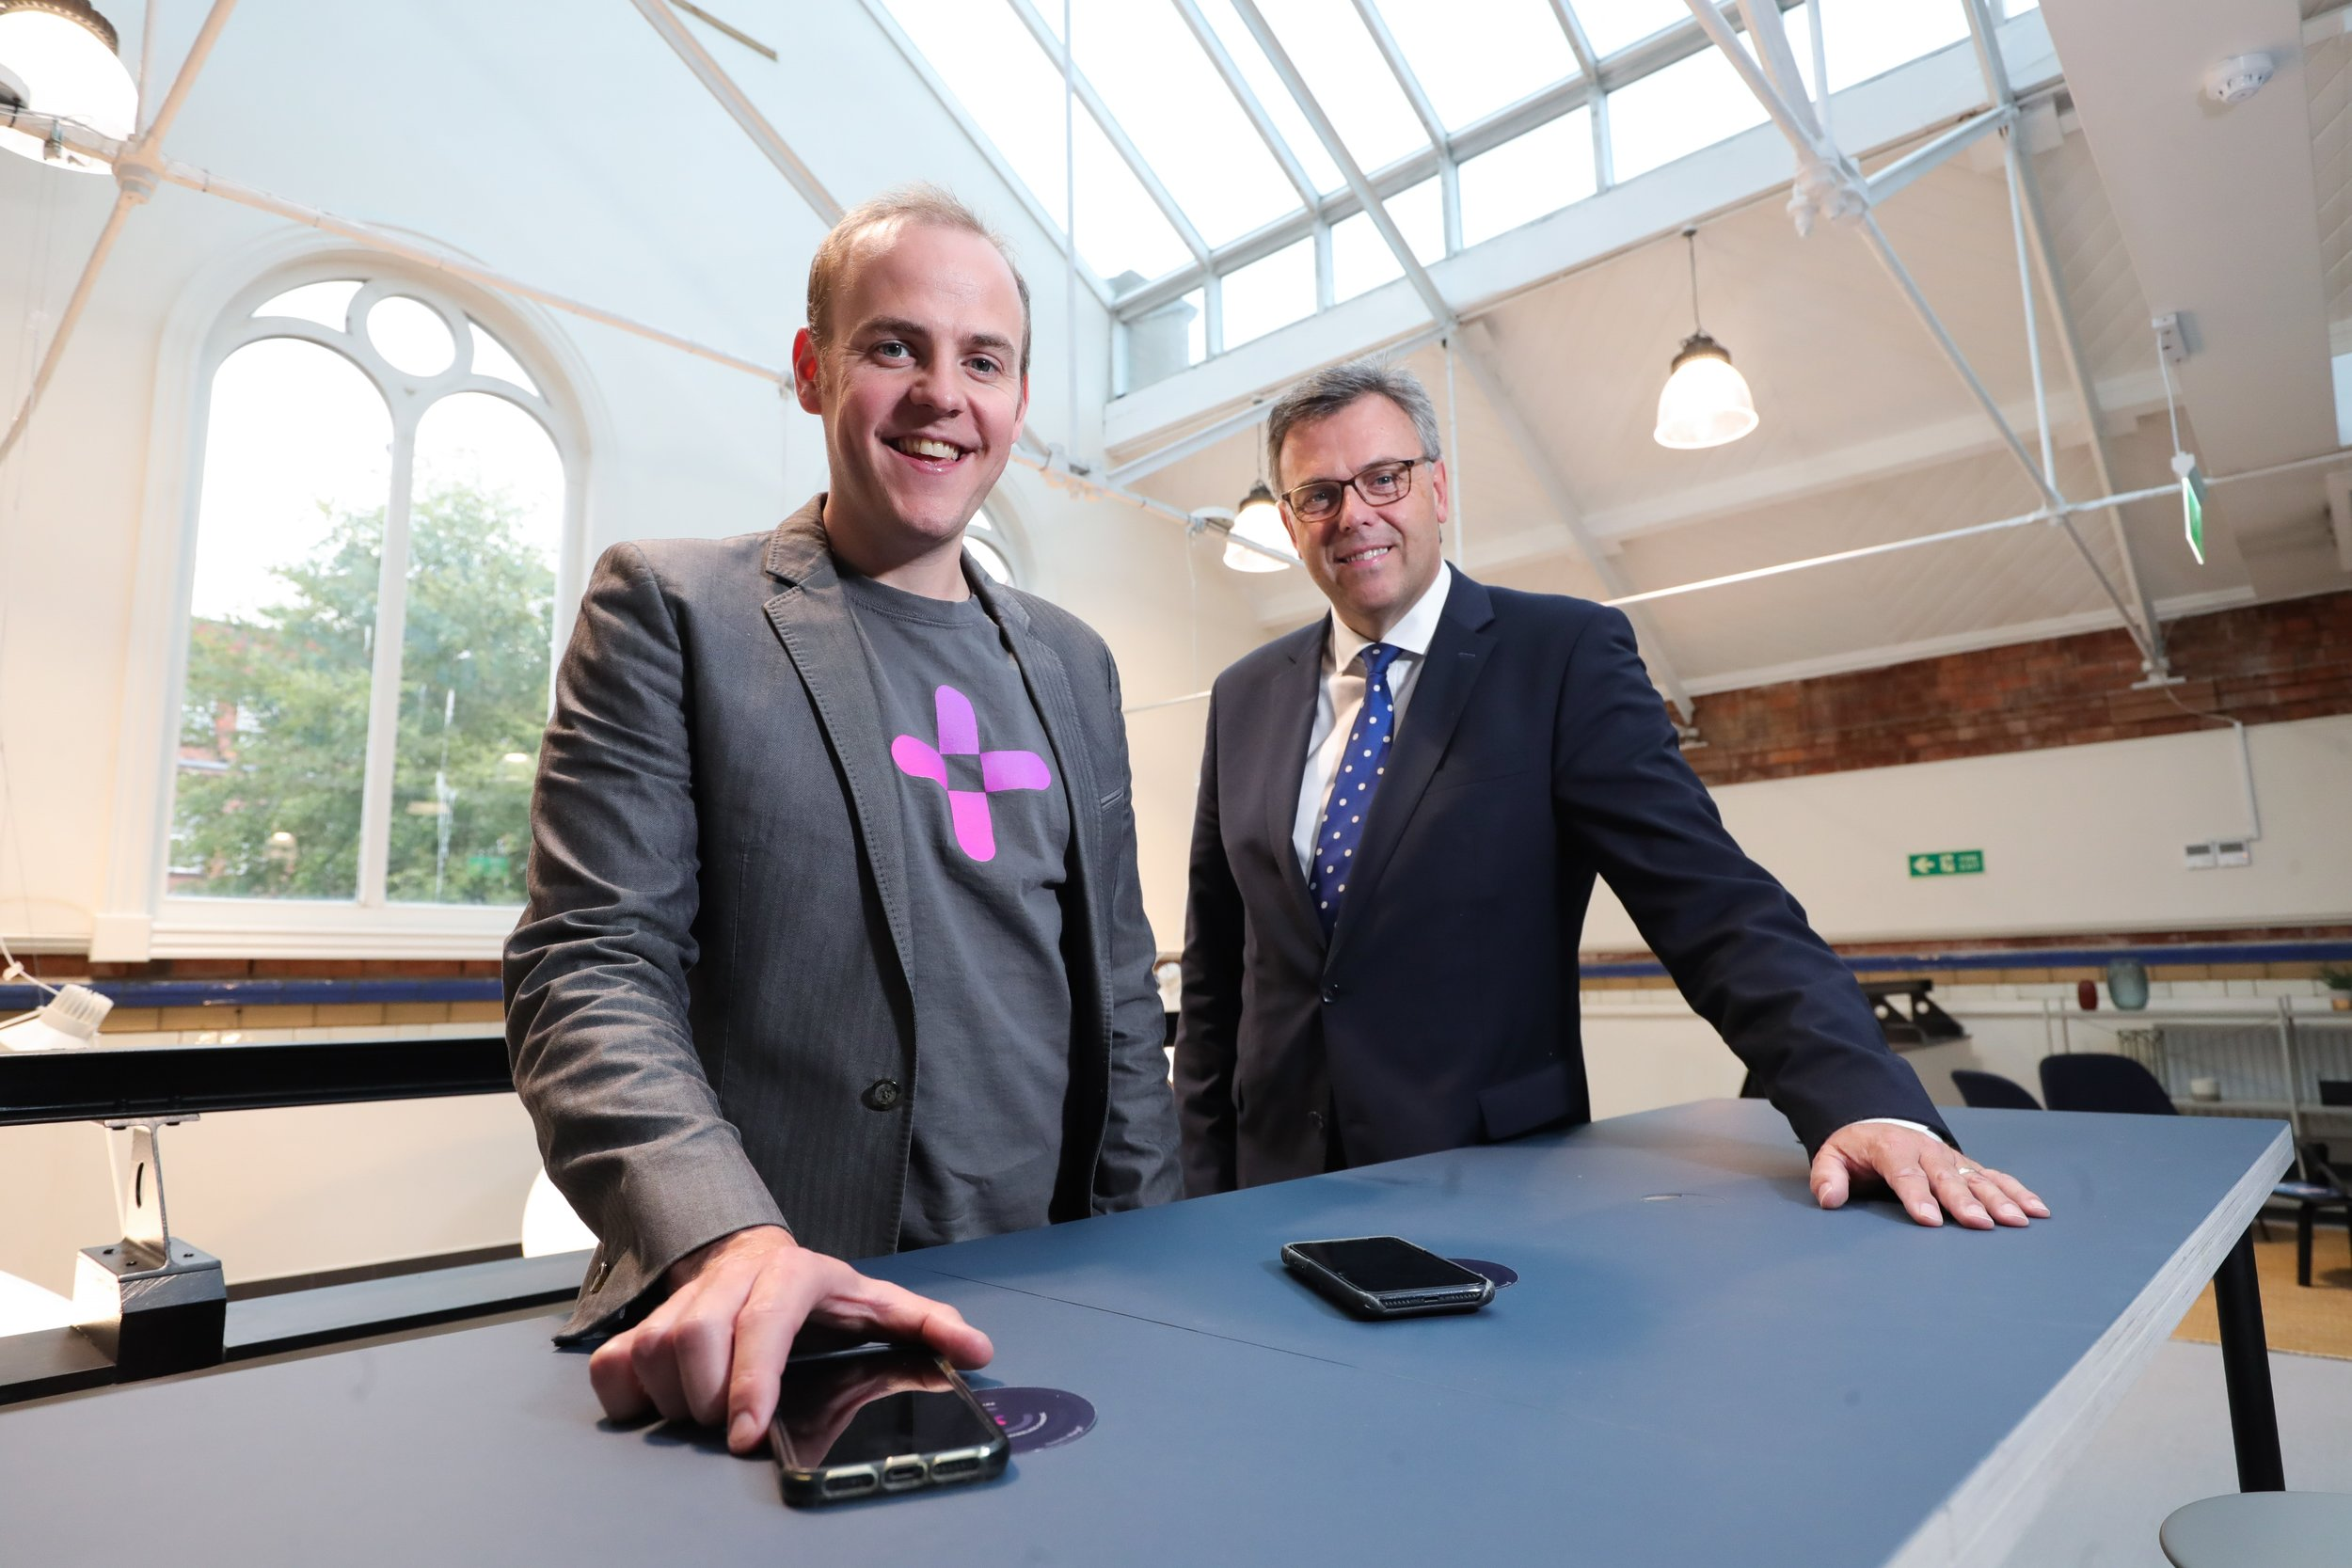 Chargifi CEO and co-founder Dan Bladen with CEO of Invest Northern Ireland, Alastair Hamilton.